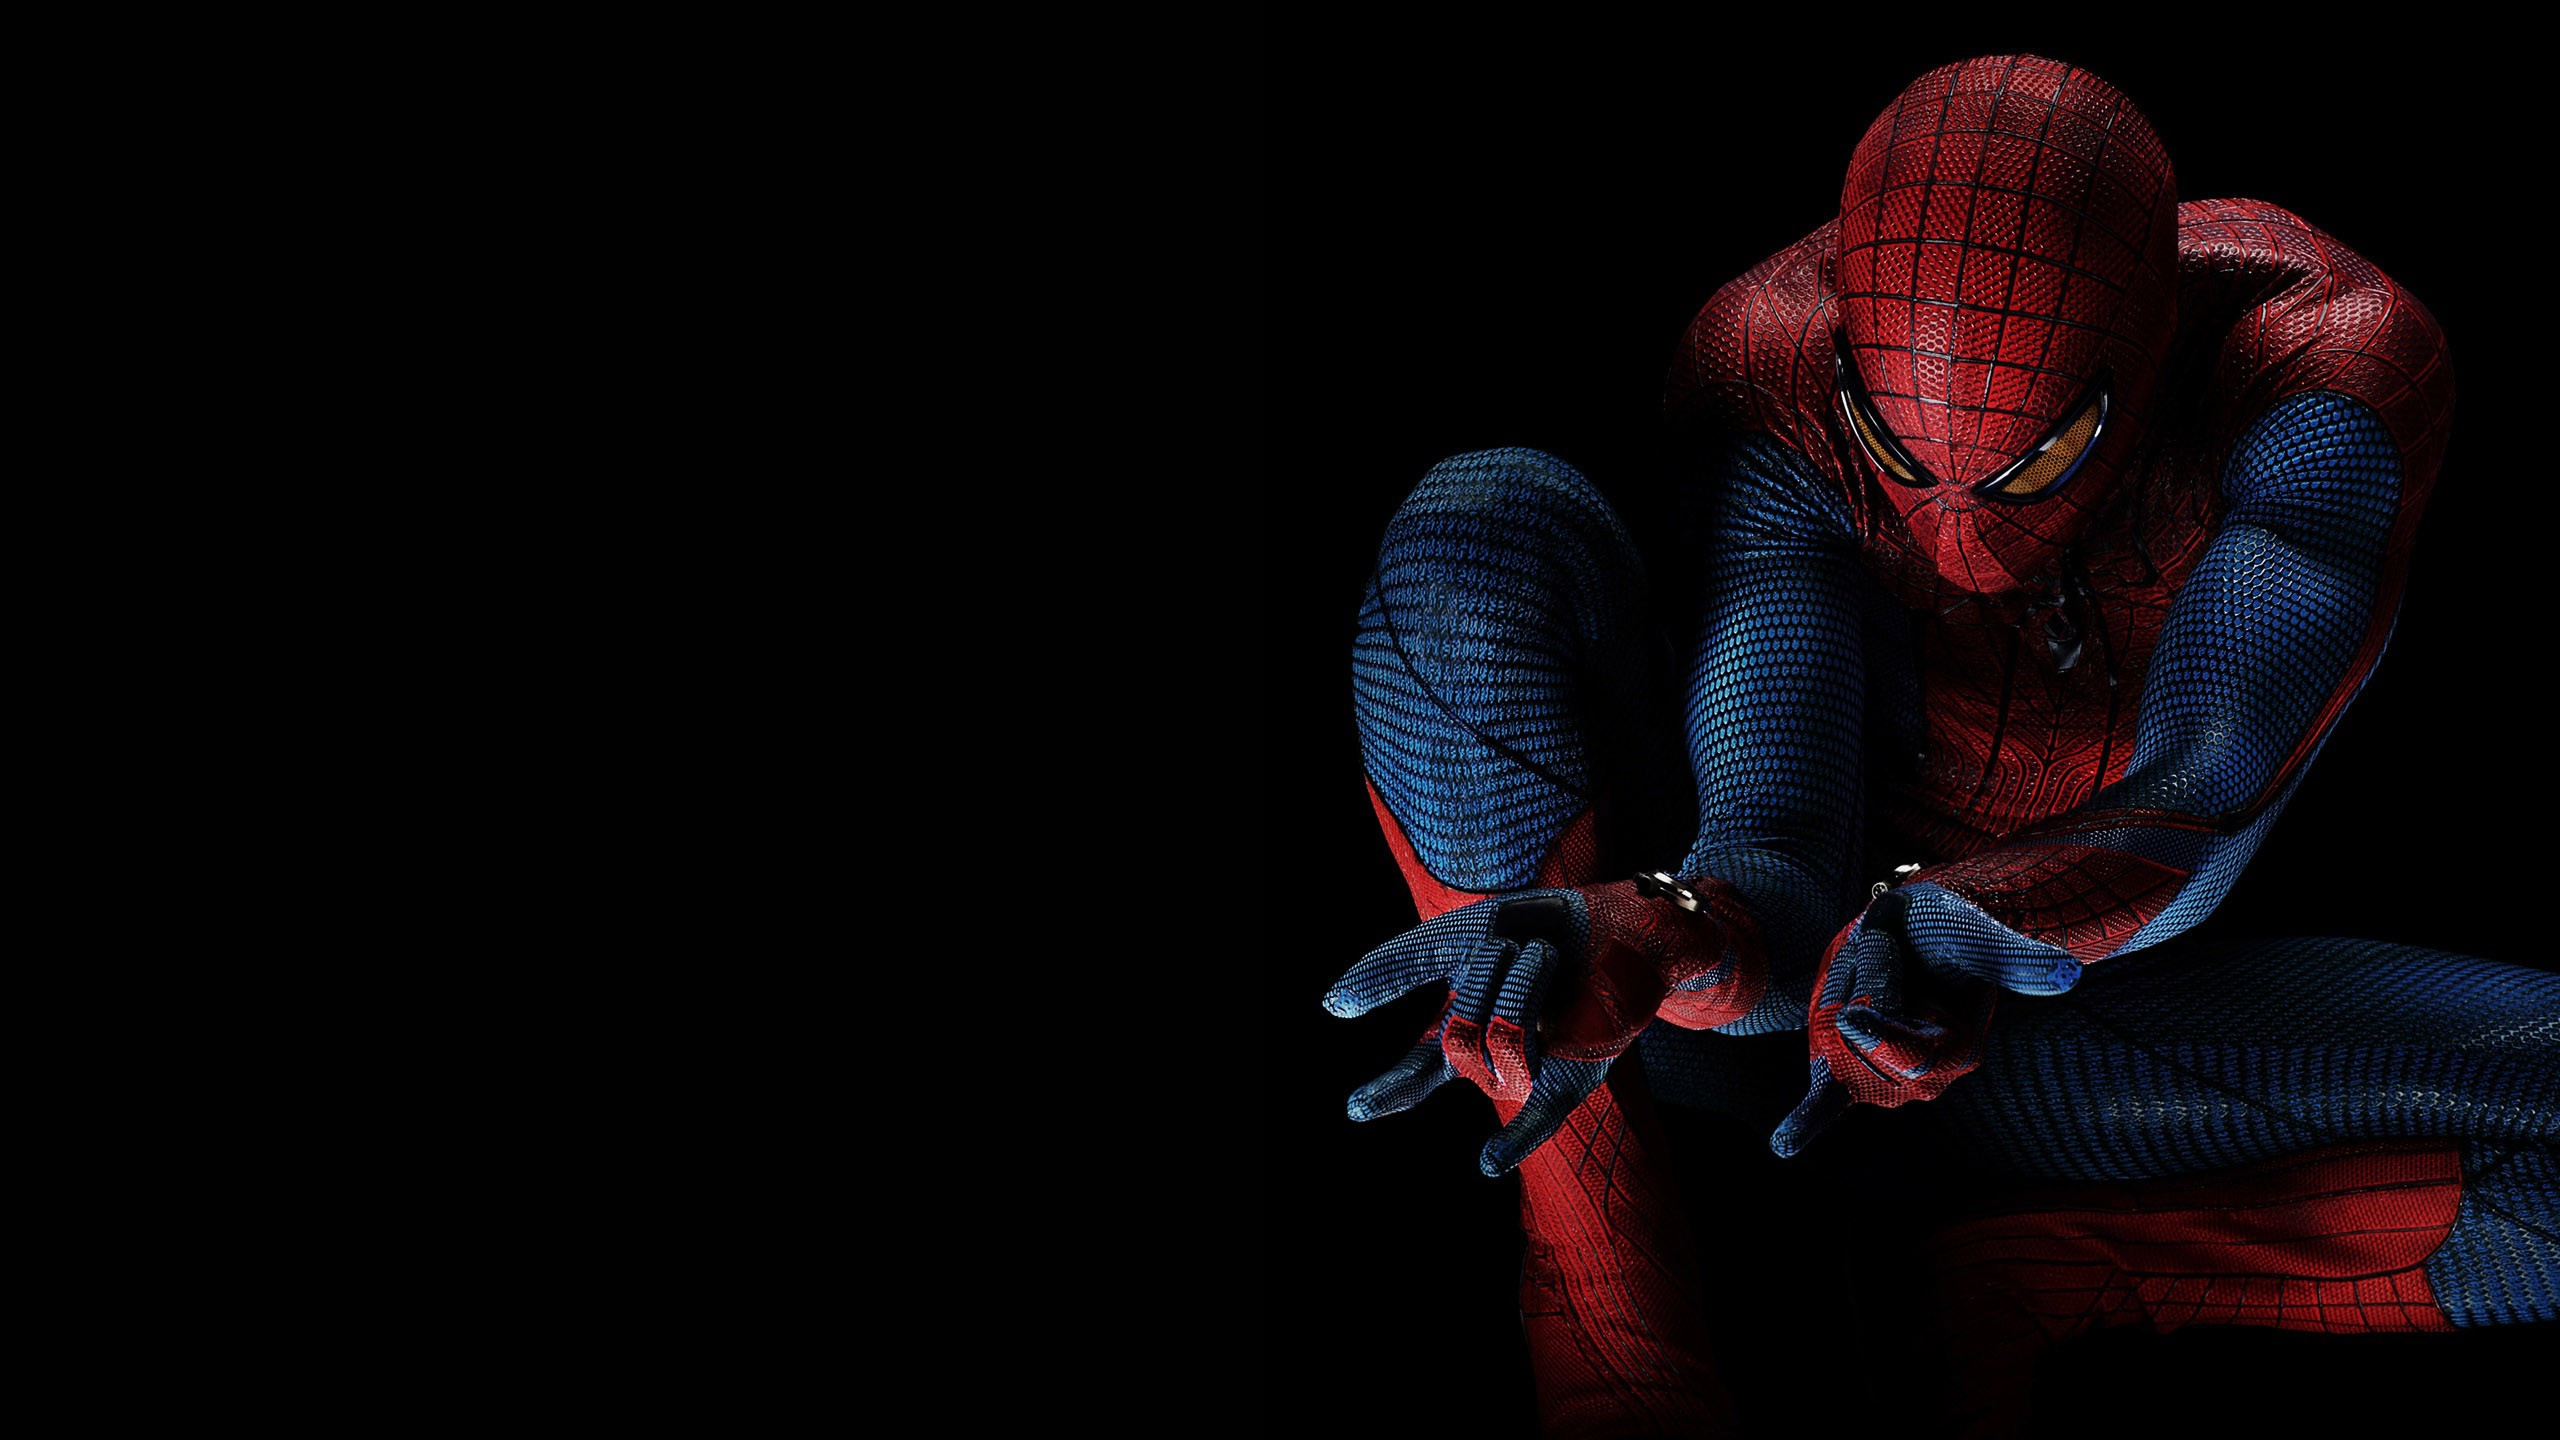 the amazing spider-man hd wallpaper | background image | 2560x1440